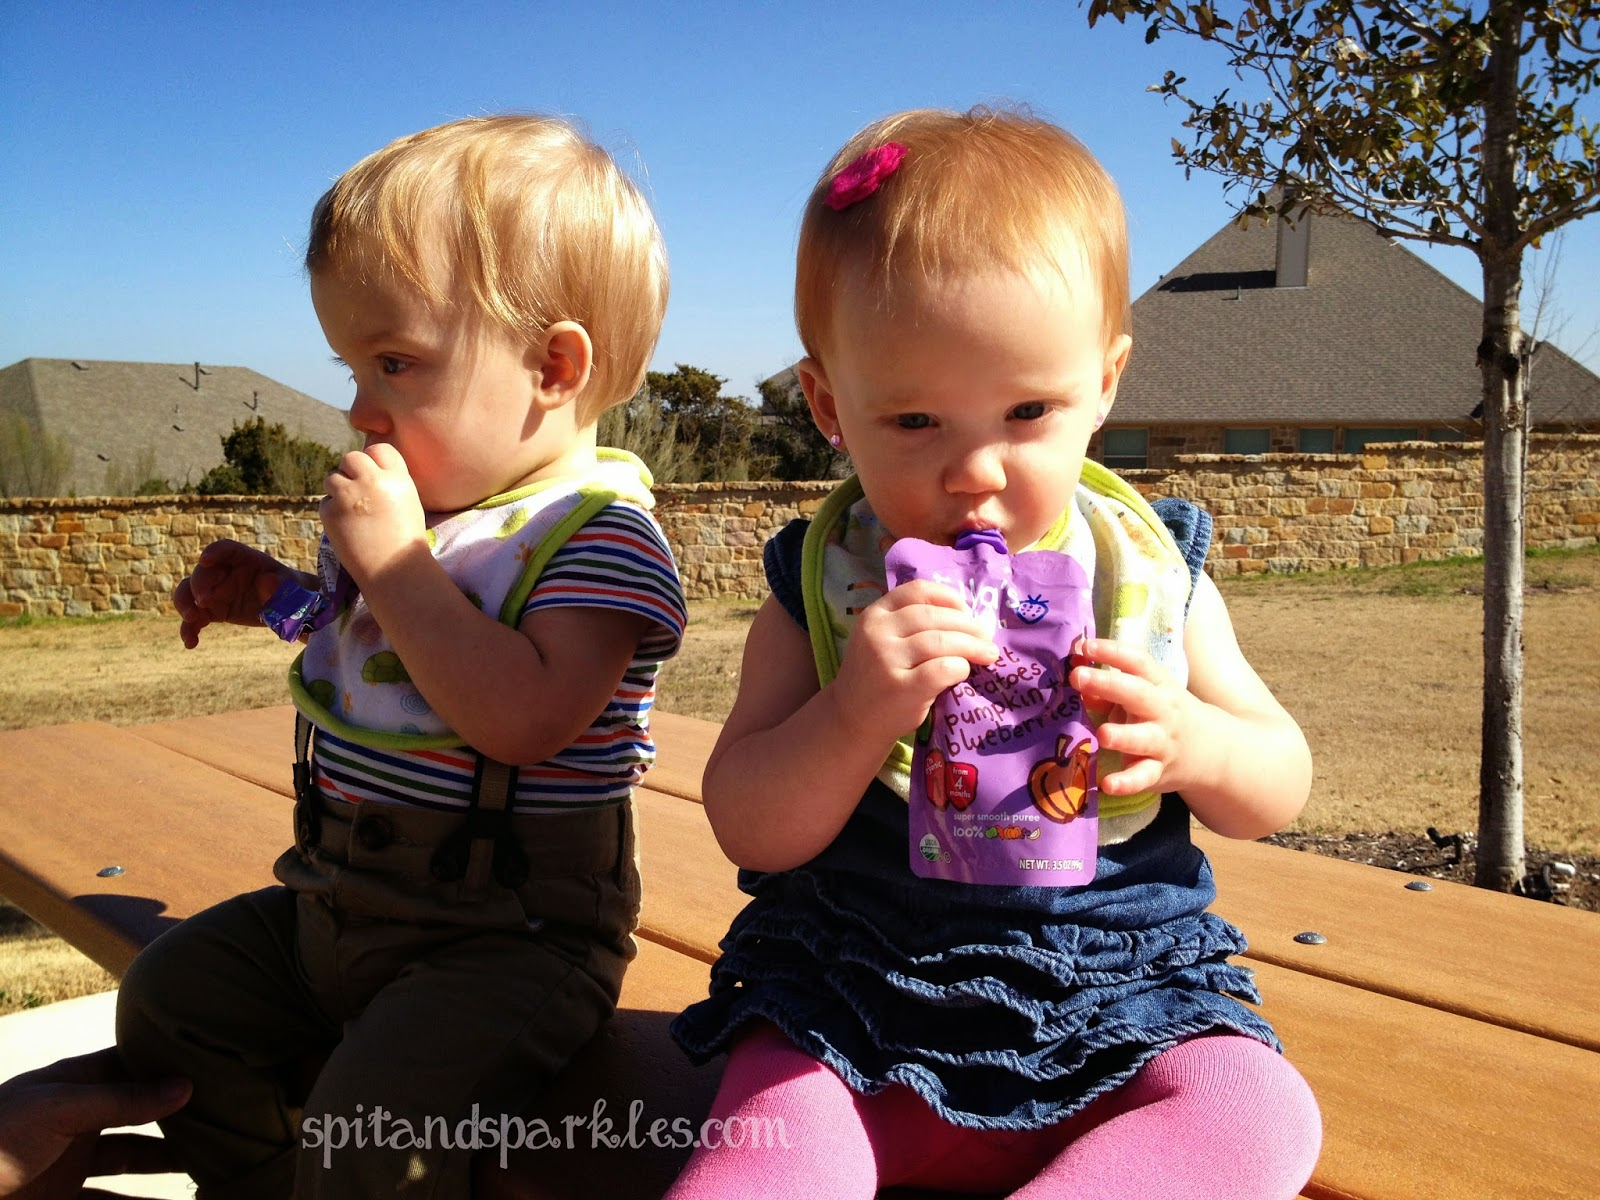 Babies with little hair can wear accessories too with Girlie Glue! Enter to #win a free tube plus 3 bows at Spit and Sparkles. #giveaway @GirlieGlue